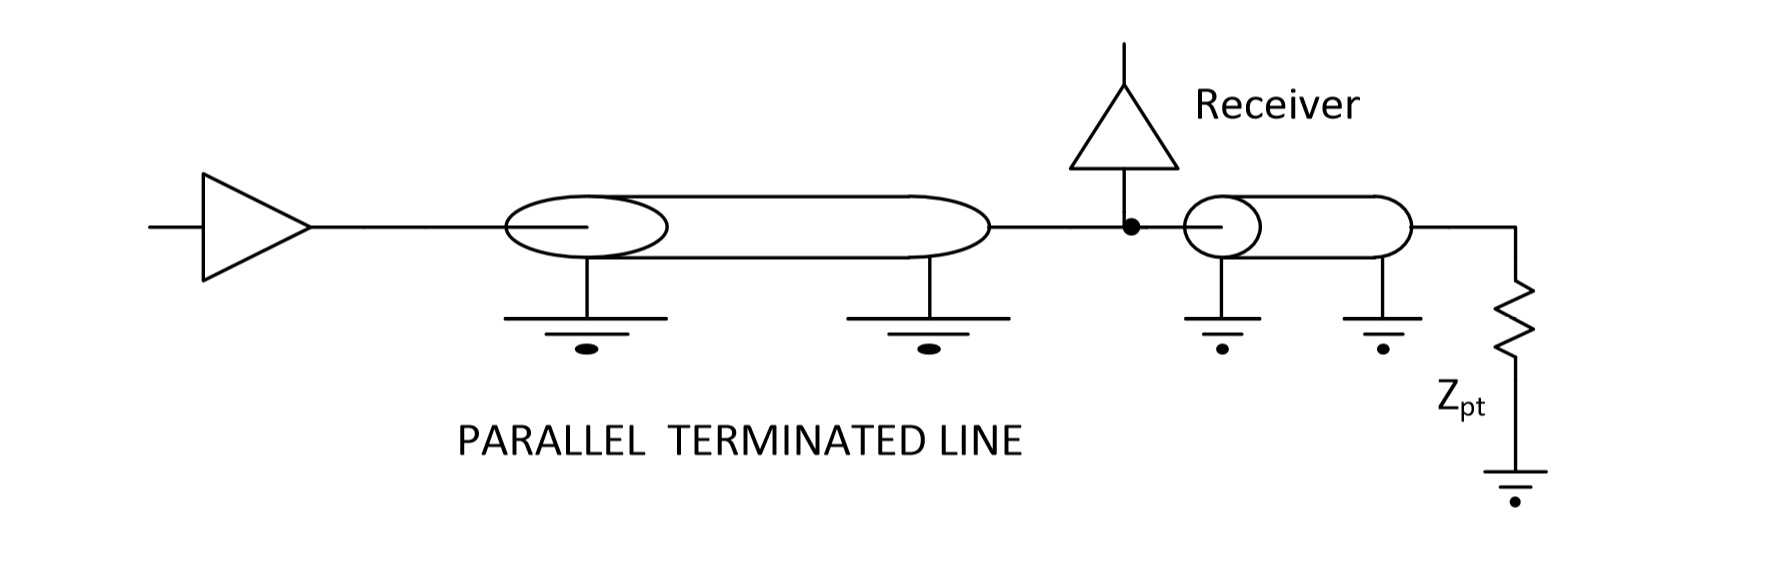 Parallel Terminated Line